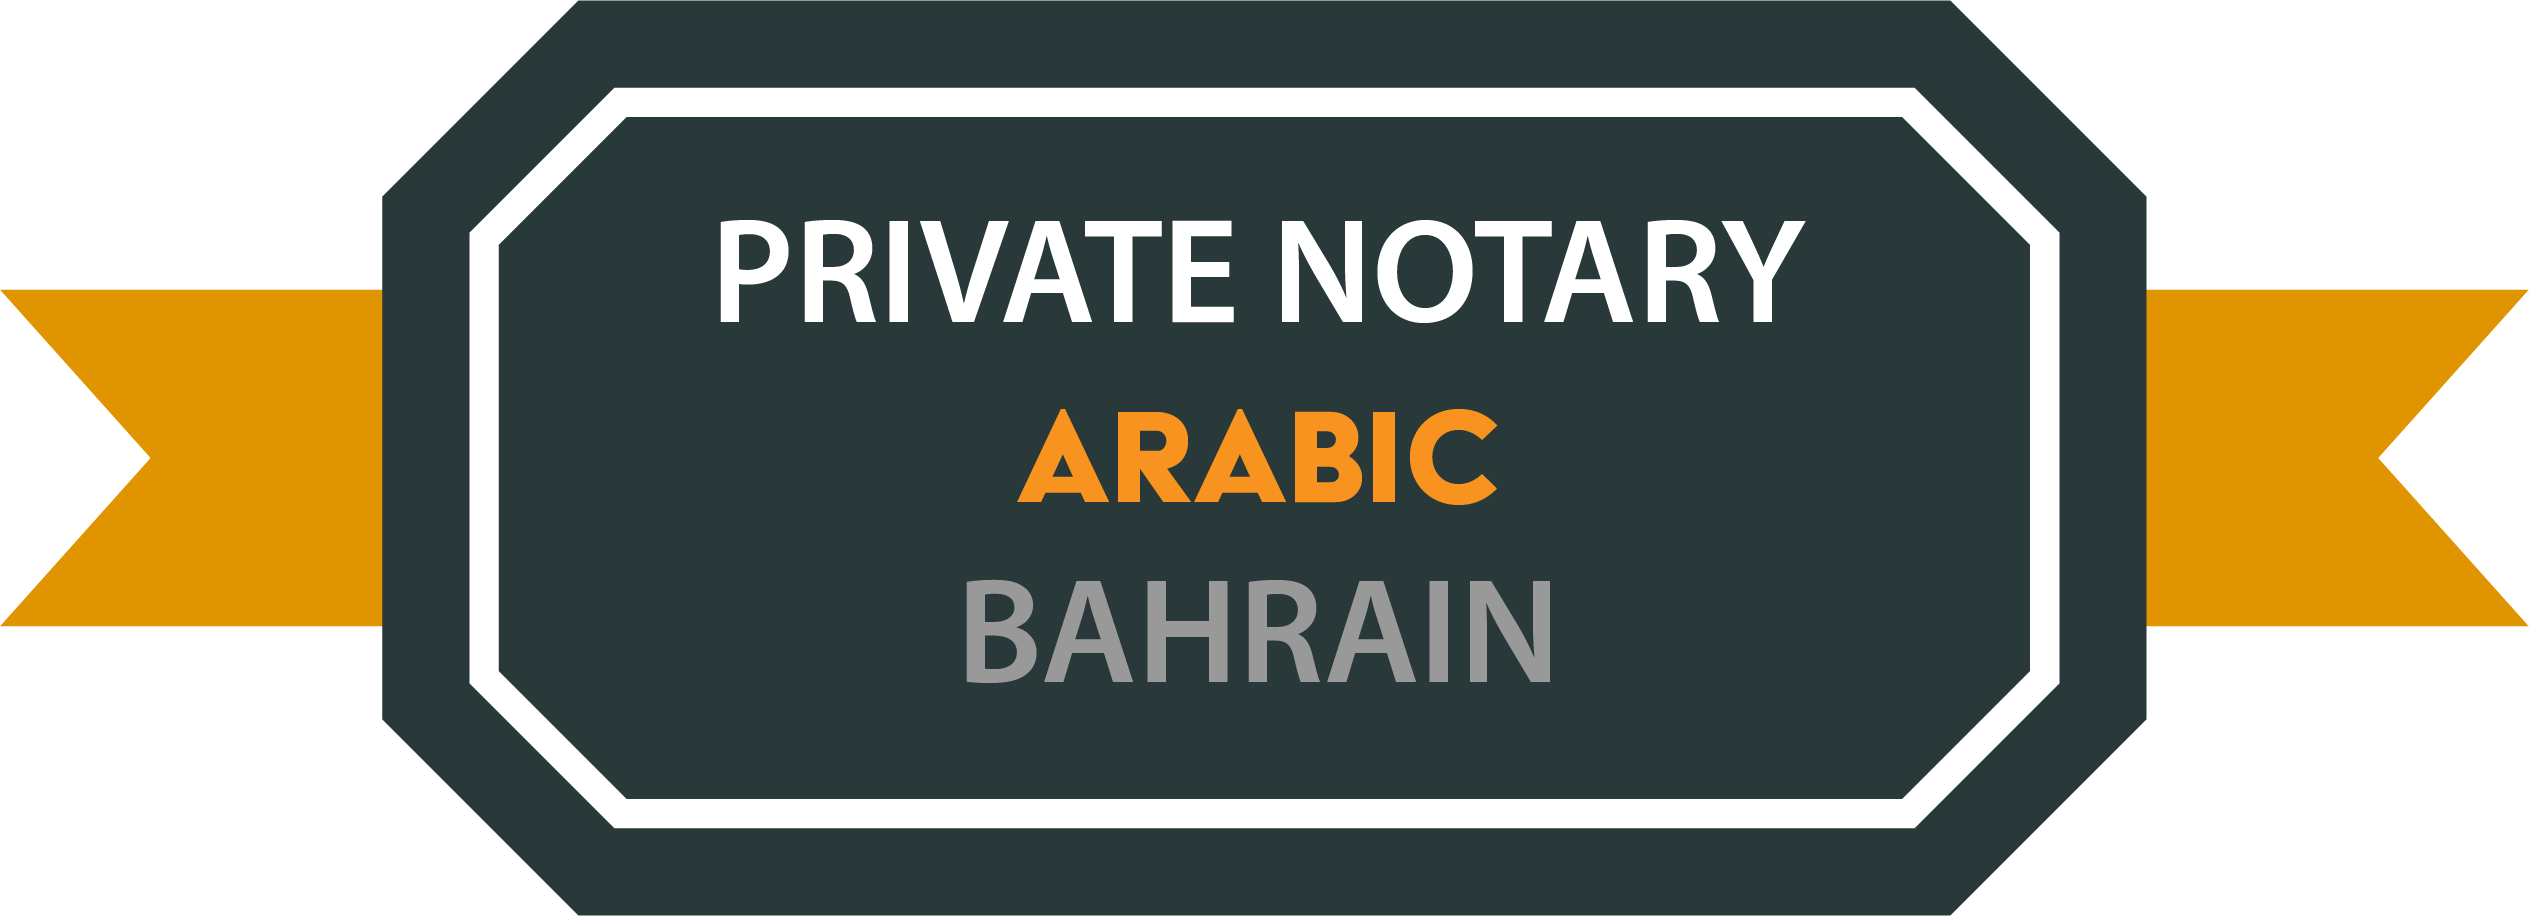 Arabic Private notary